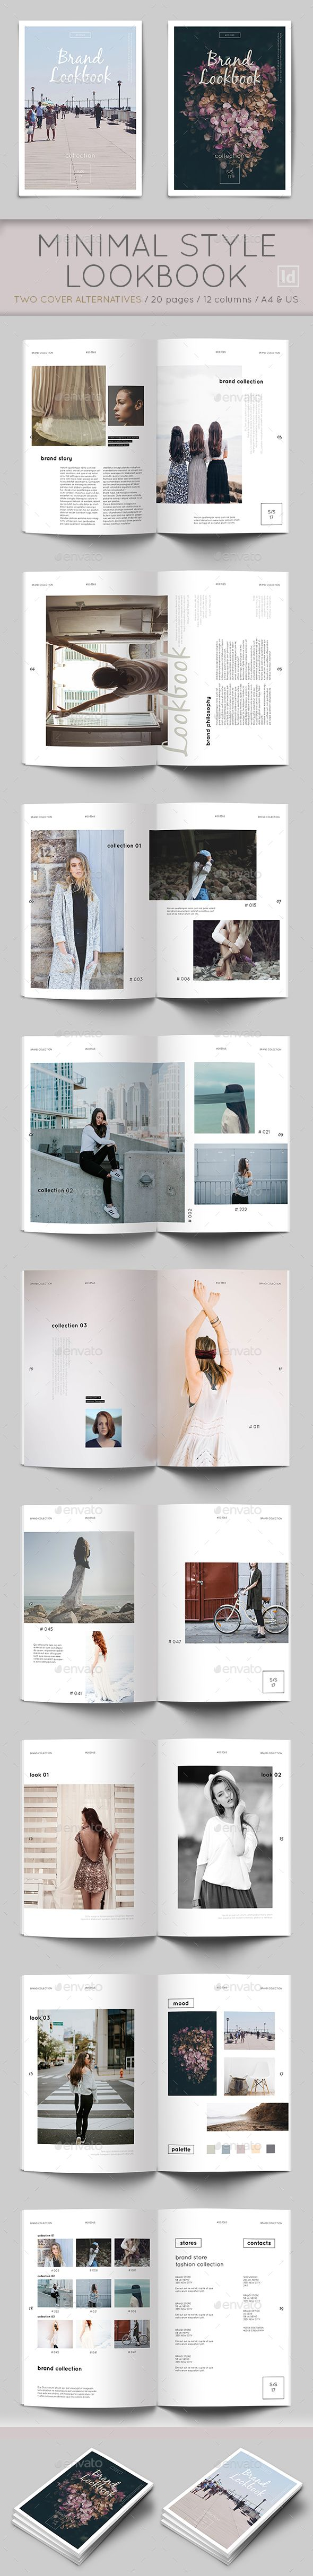 Brand Lookbook Template — InDesign INDD #product #stylish • Download ➝ https://graphicriver.net/item/brand-lookbook-template/18946310?ref=pxcr